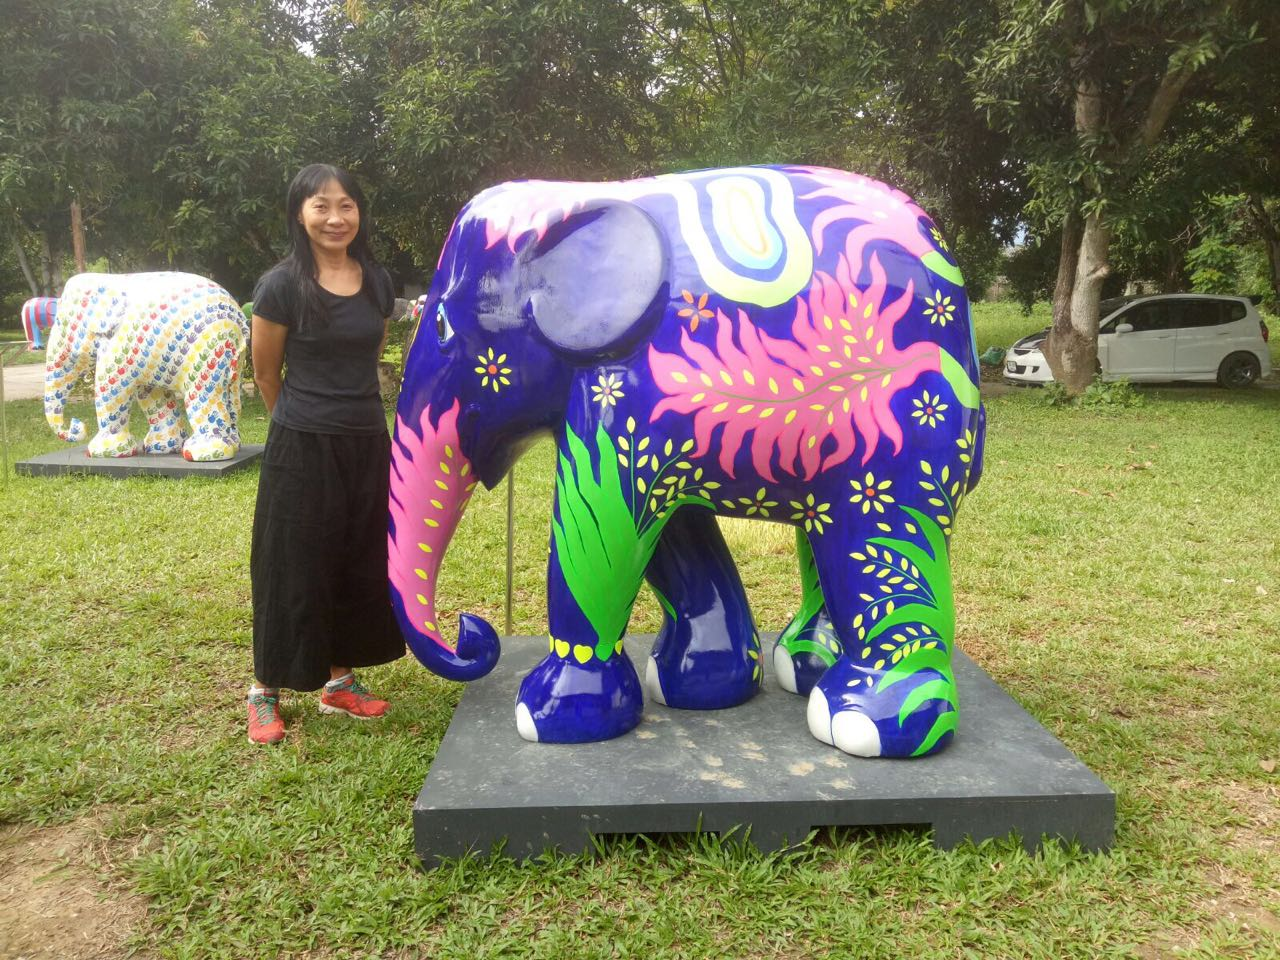 Artist Li Li Tan with her painted elephant statue for Elephant Parade